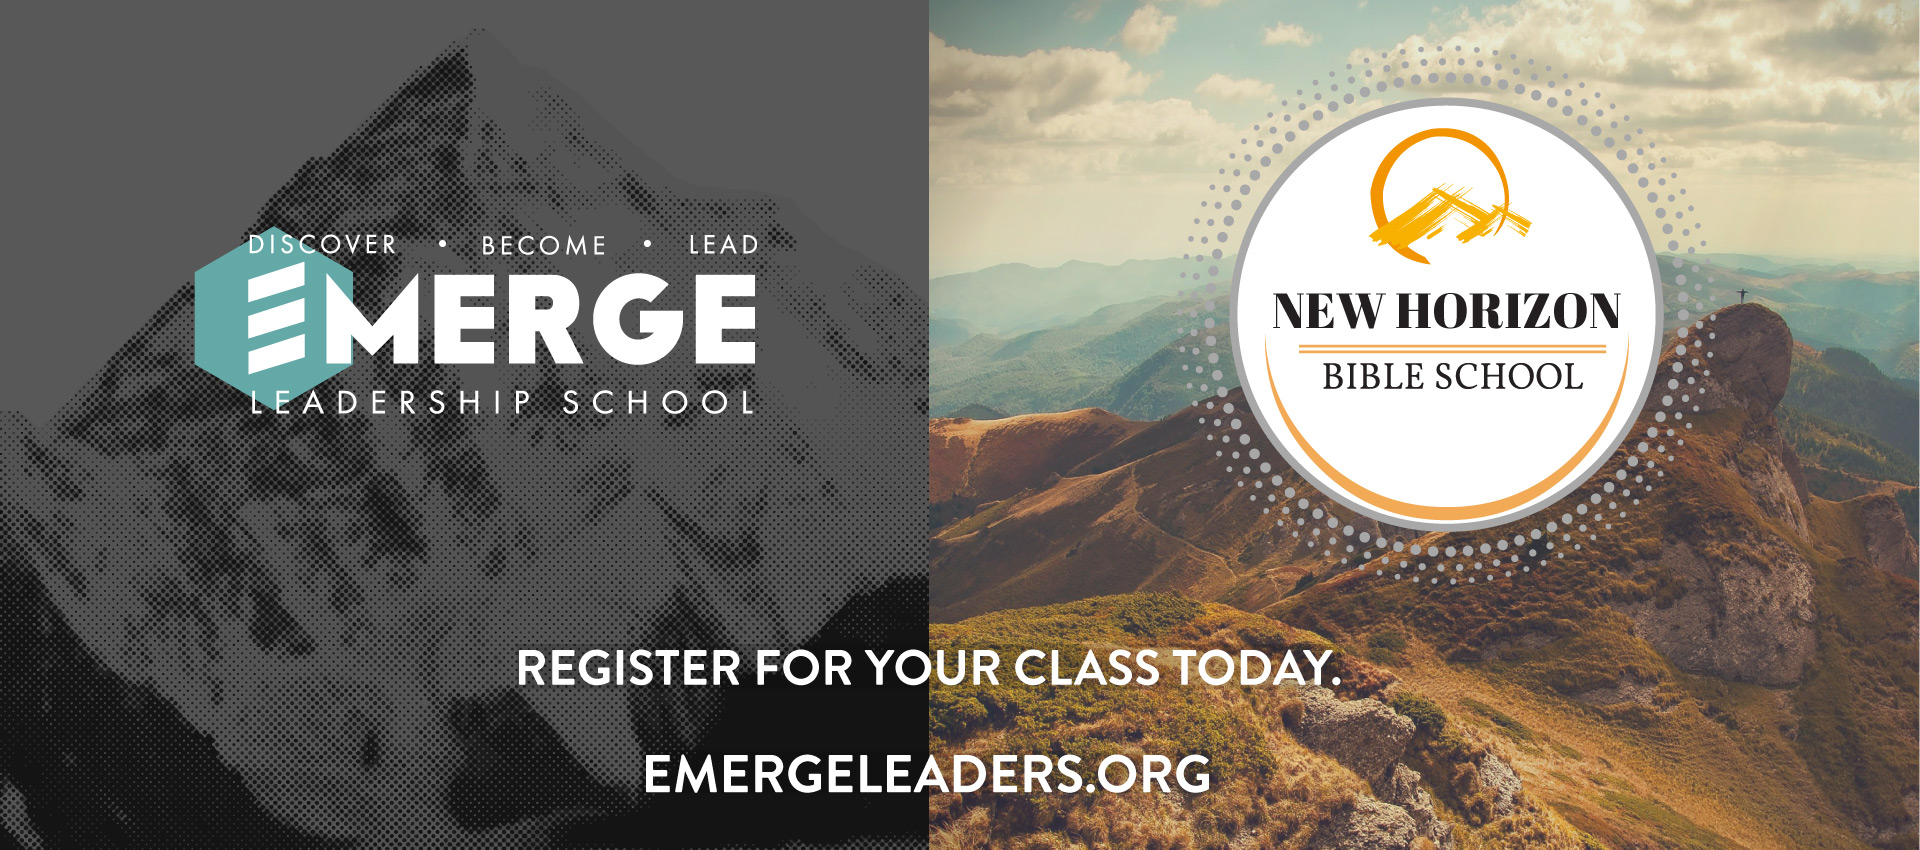 Emerge Leadership School - Register Today